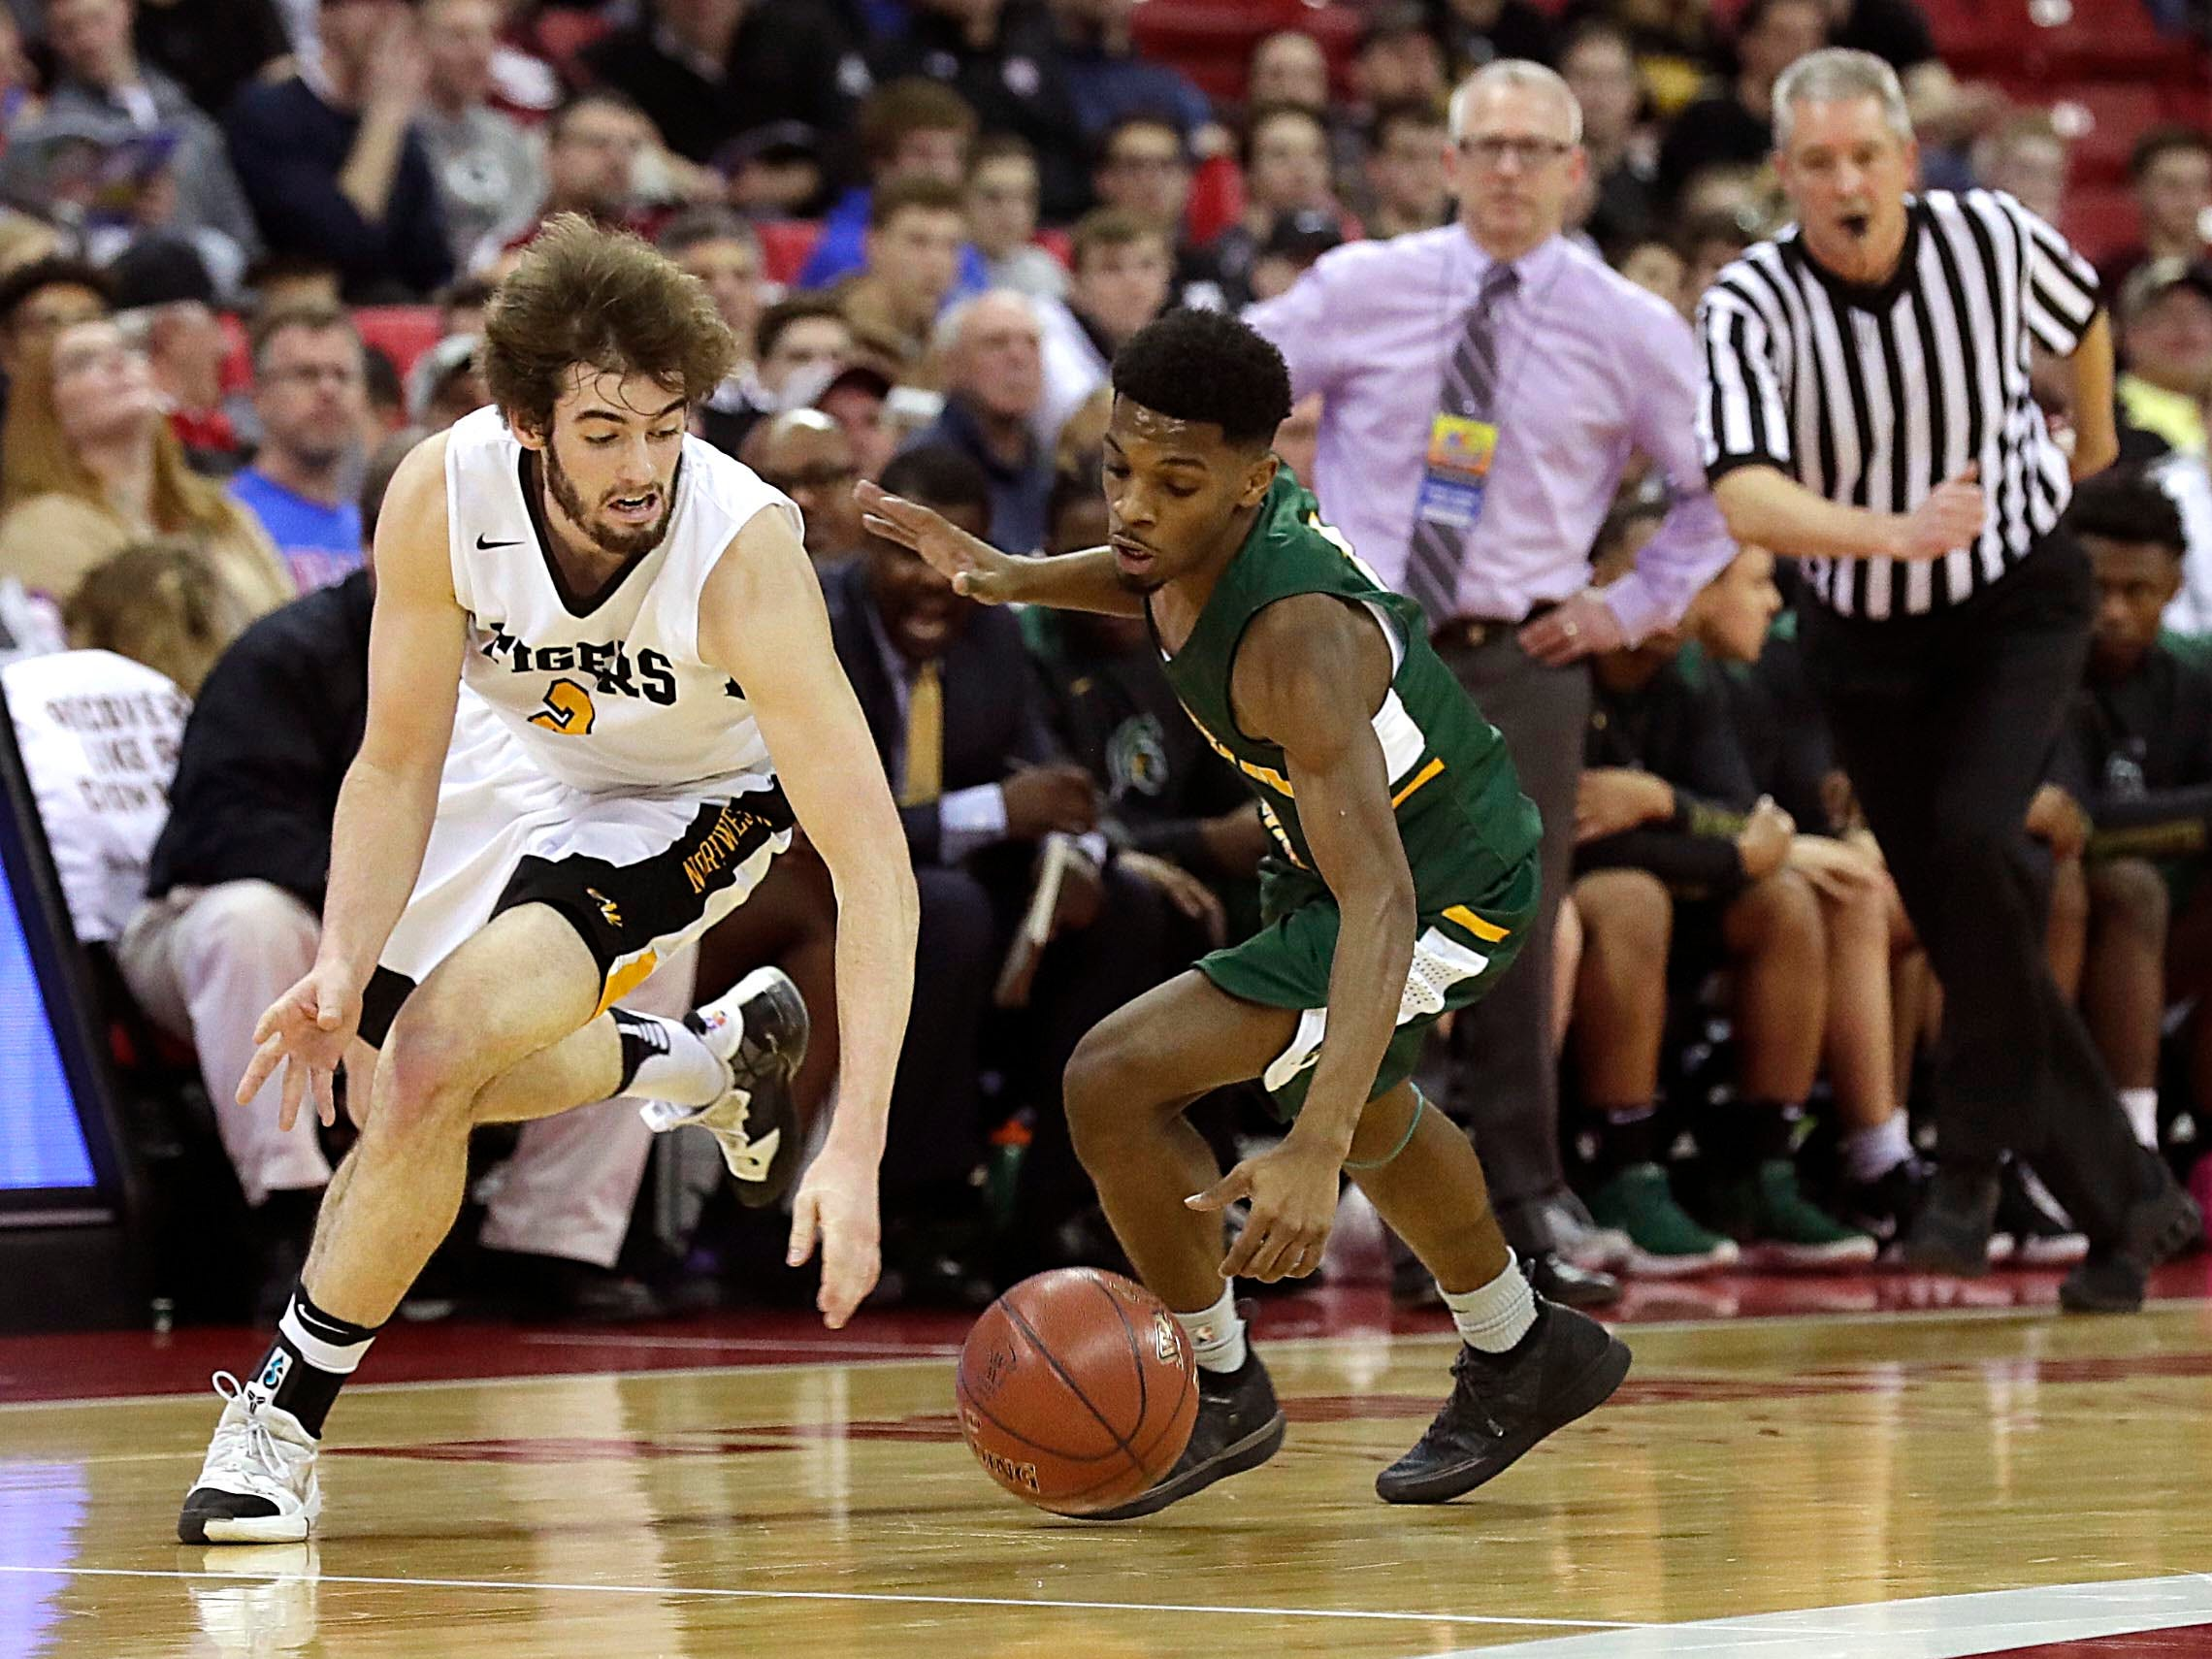 Northwestern's  Brody Payton  and Martin Luther's Trequan Carrington chase a loose ball on Thursday. Carrington scored 41 points, a WIAA division 3 state record.